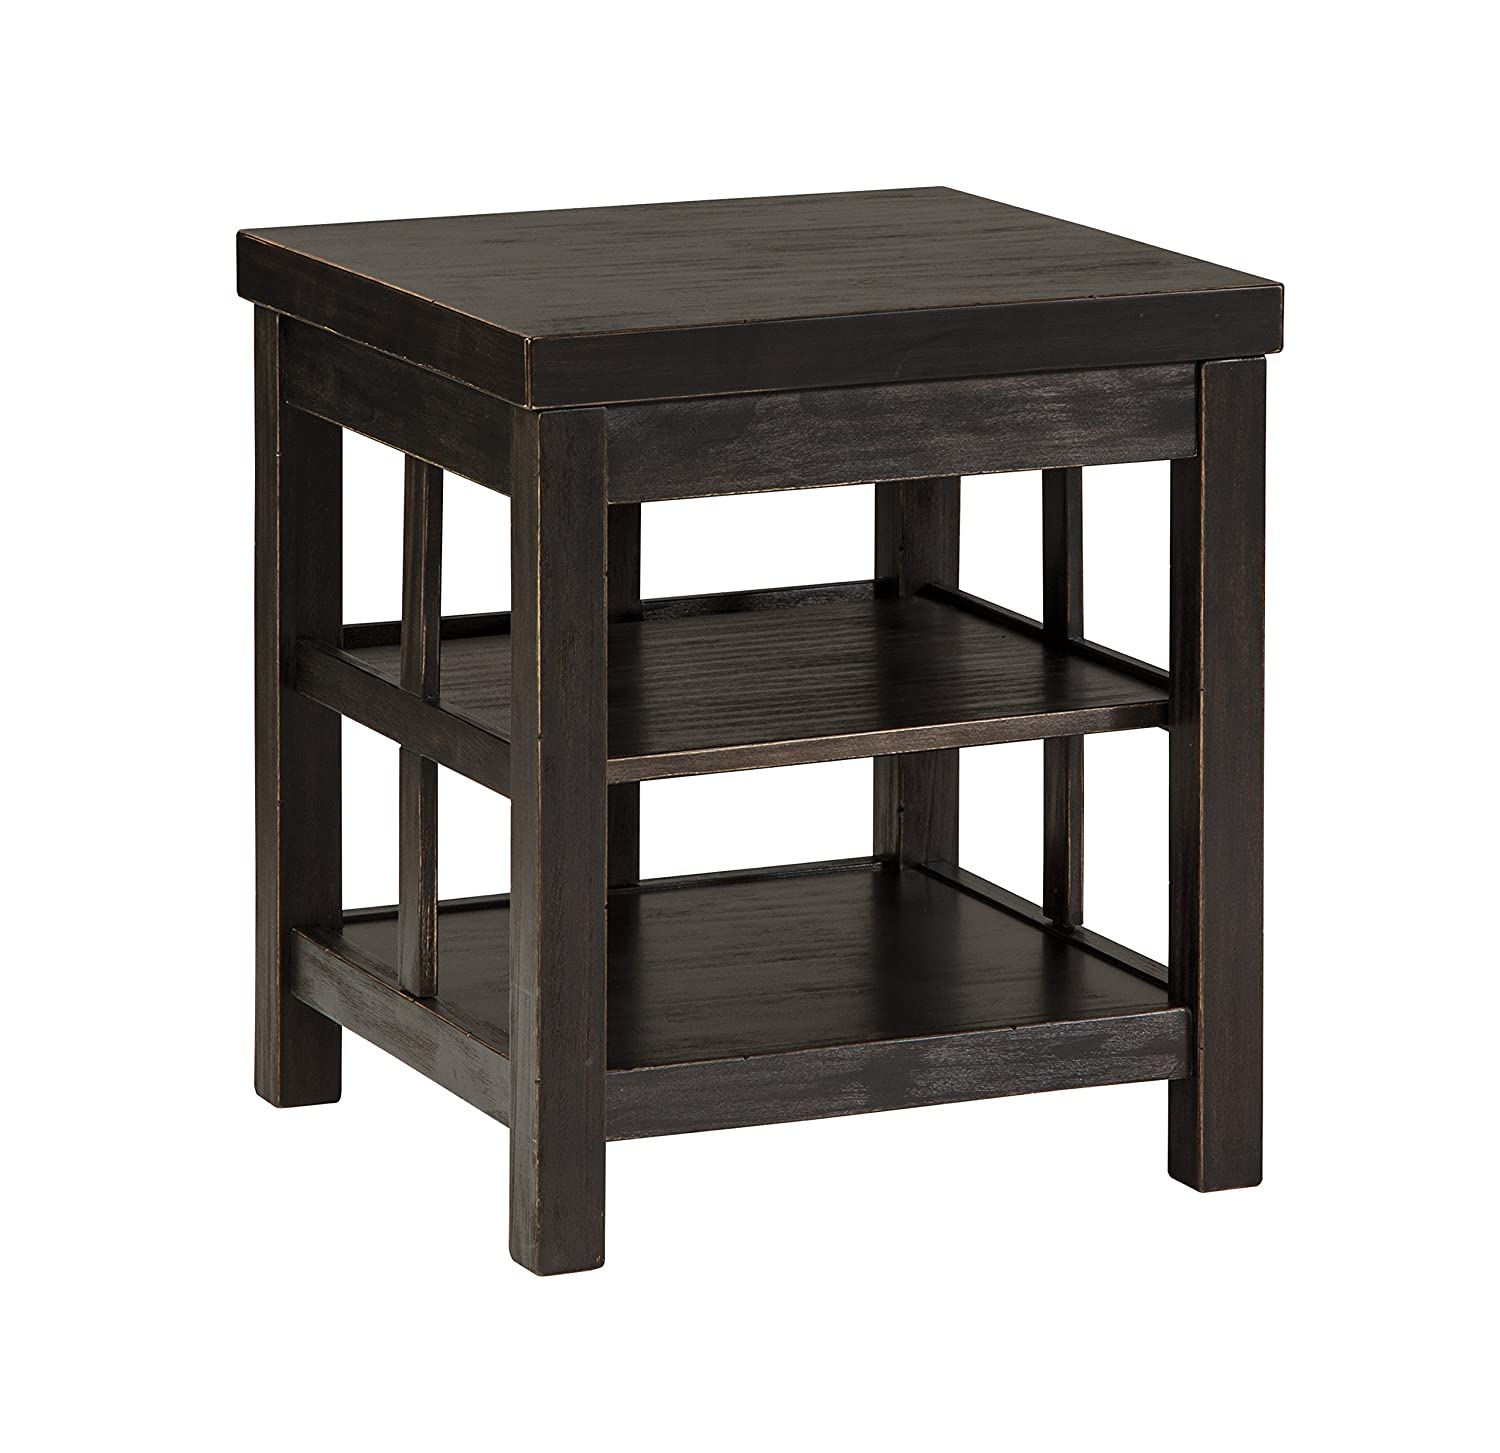 Signature Designs By Ashley Rollins Square End Table: Ashley Furniture Signature Design